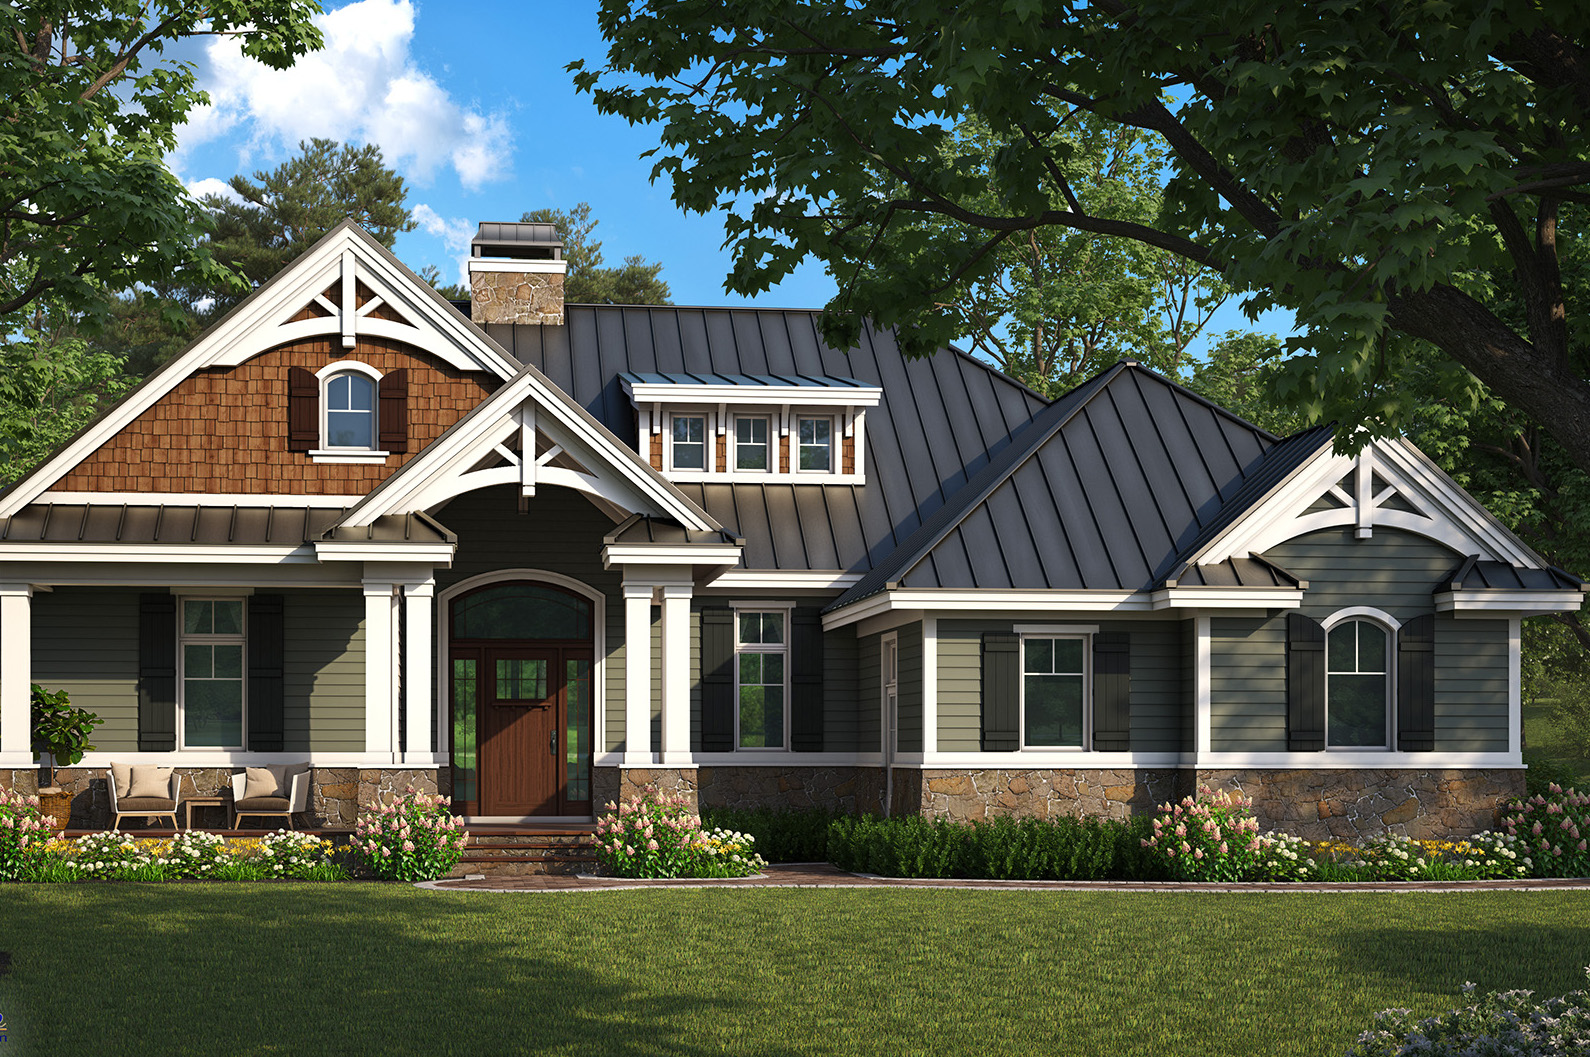 Craftsman home plan 2 bedrms 2 baths 1610 sq ft for Custom craftsman house plans